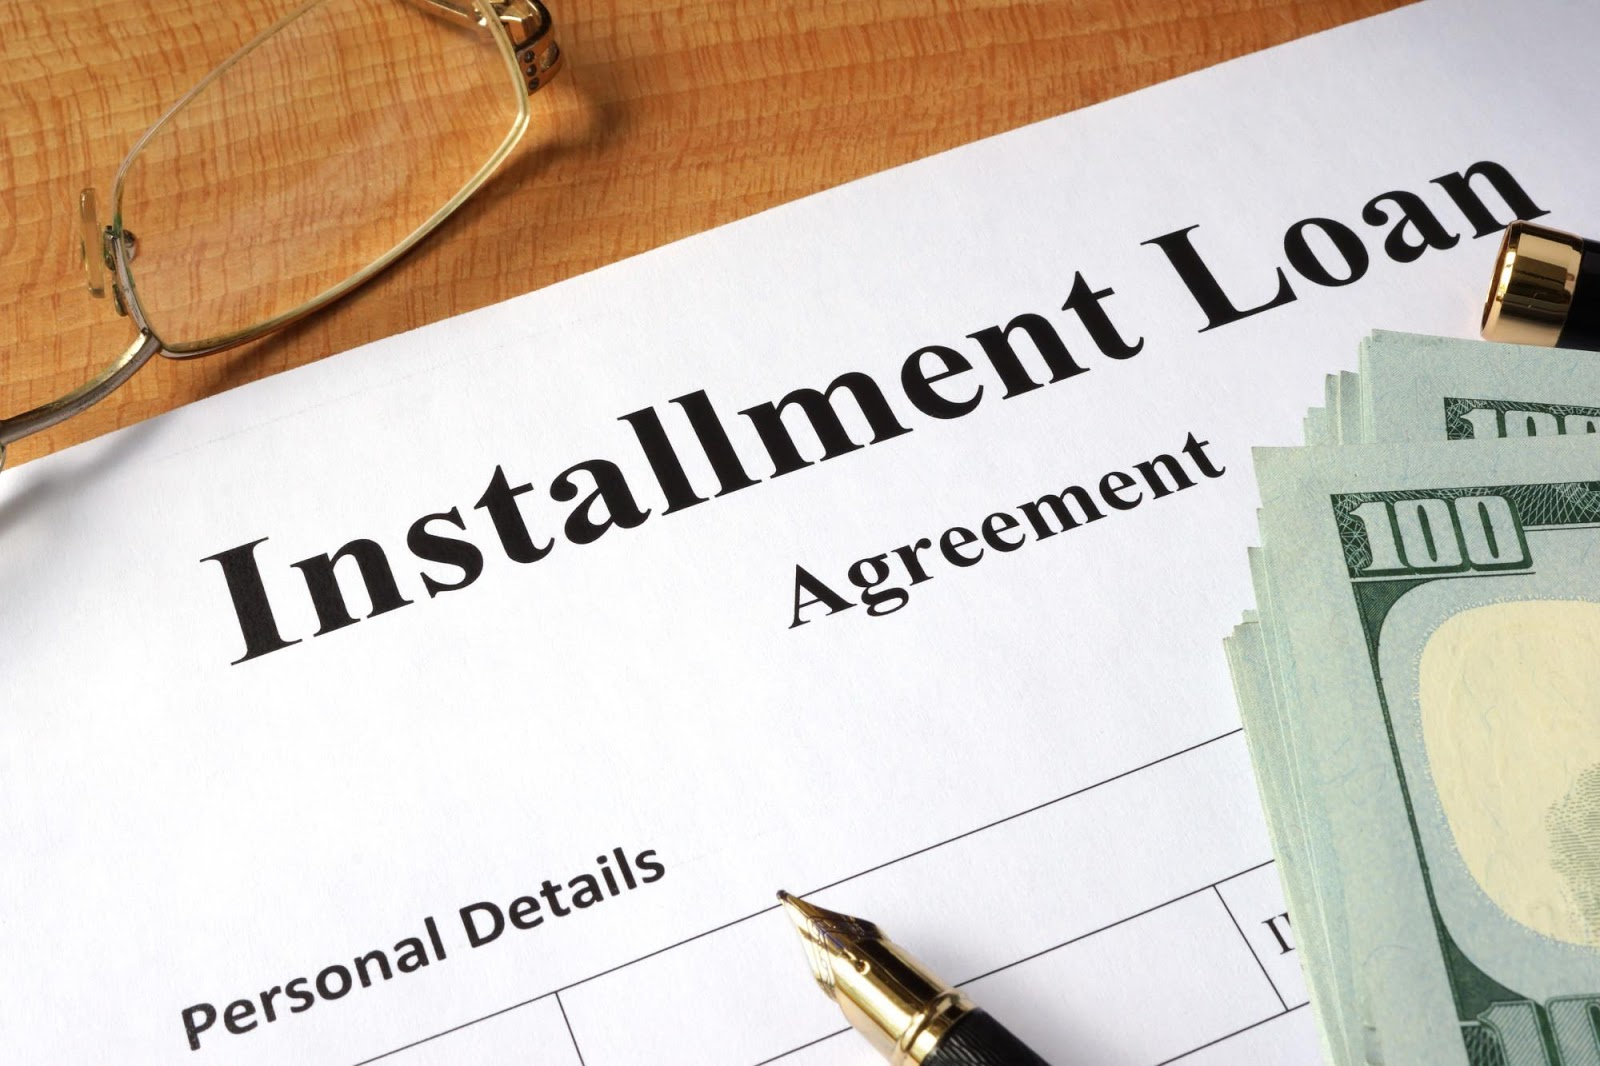 Installment Loans to Rebuild Credit: How to Use Them to Your Advantage